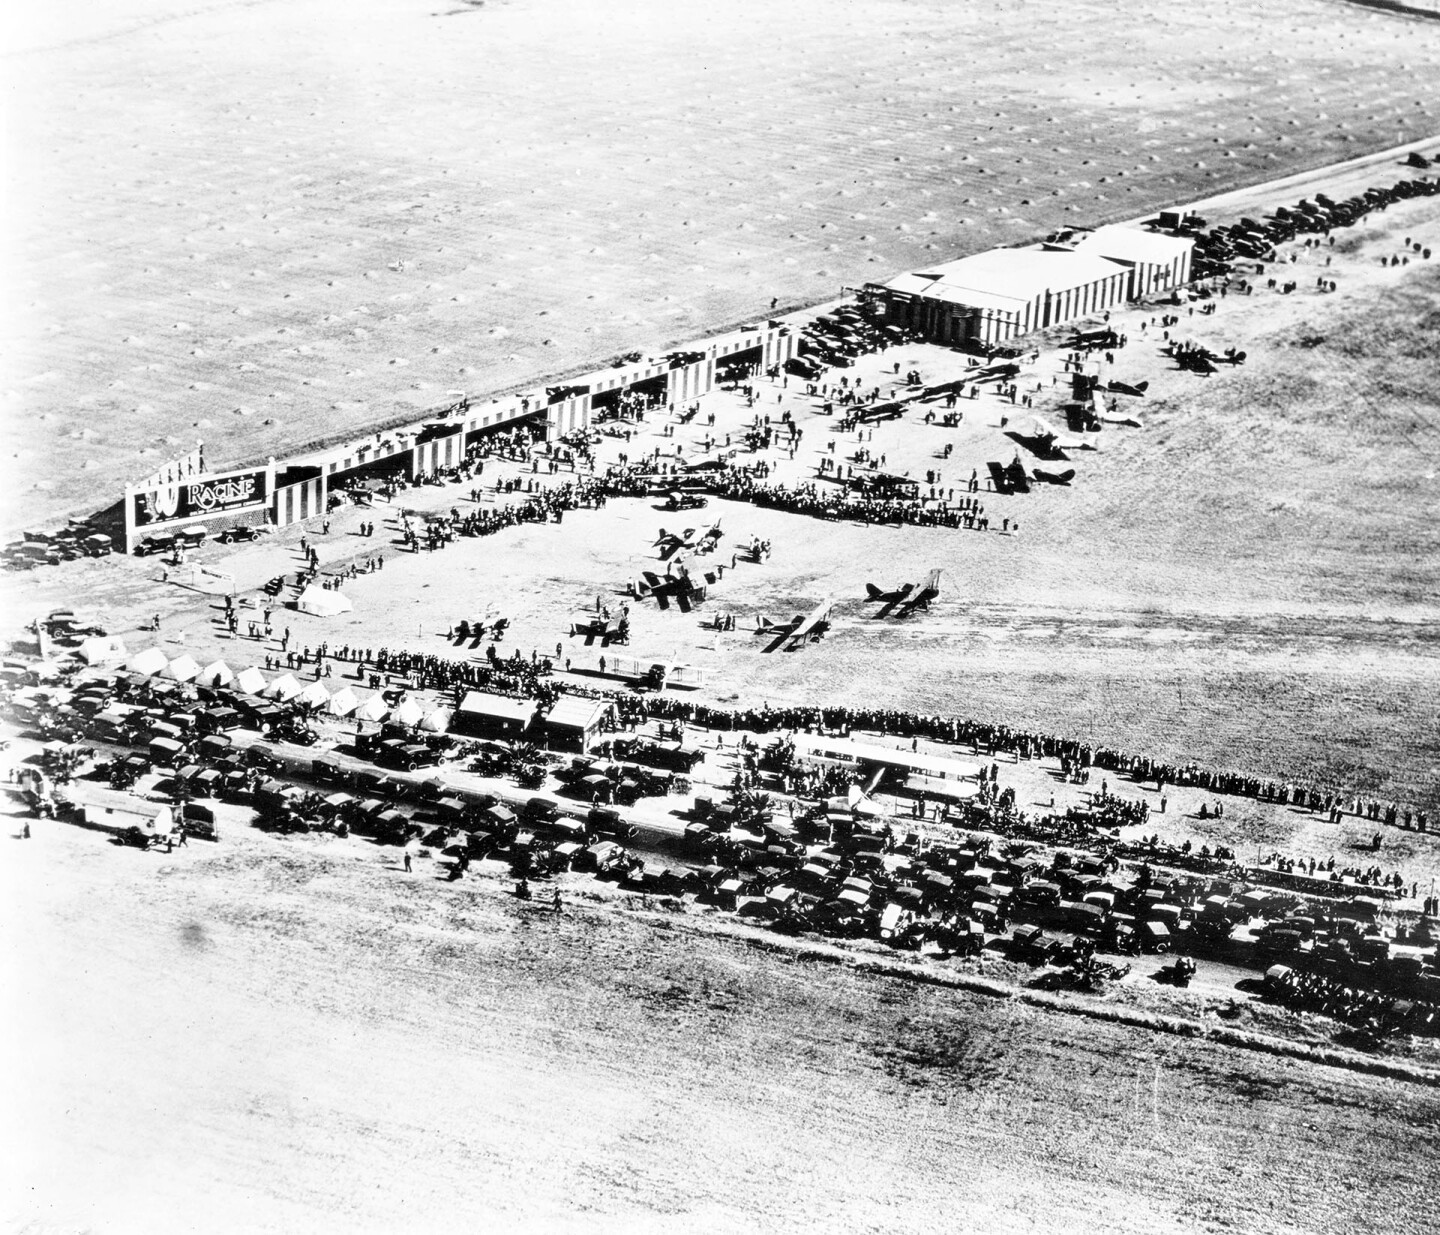 Aerial view looking southeast on crowds at Sid Chaplin's airport at the intersection of Wilshire Boulevard and Fairfax Avenue, Los Angeles, 1920